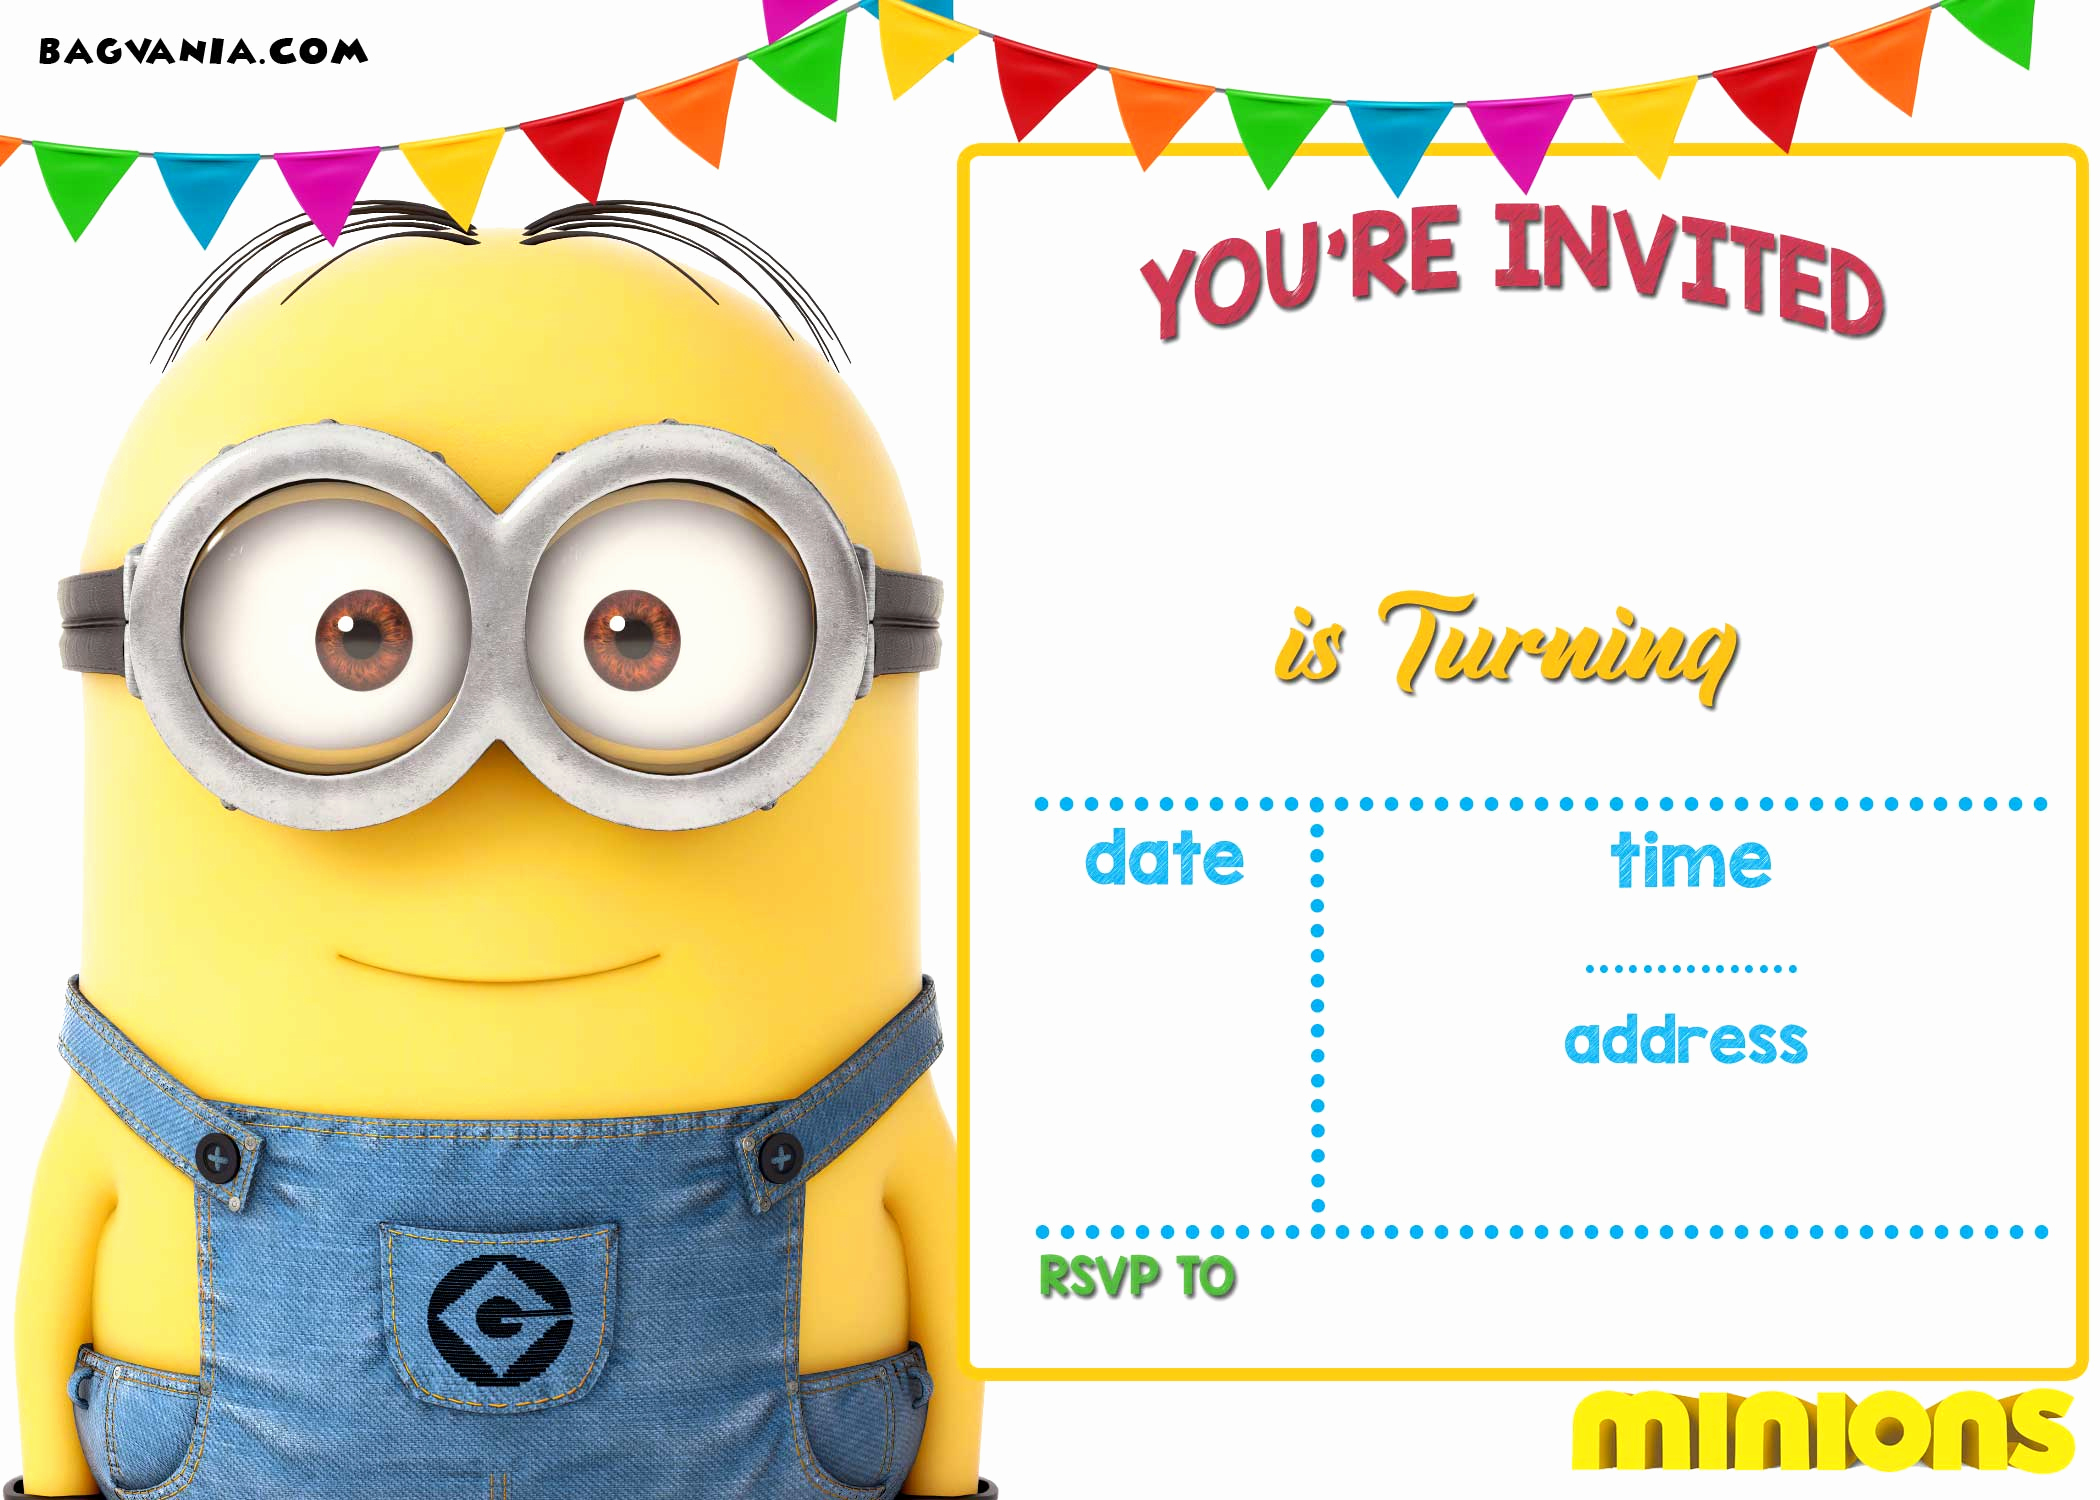 Minion Birthday Party Invitation Beautiful Free Printable Minion Birthday Party Invitations Ideas